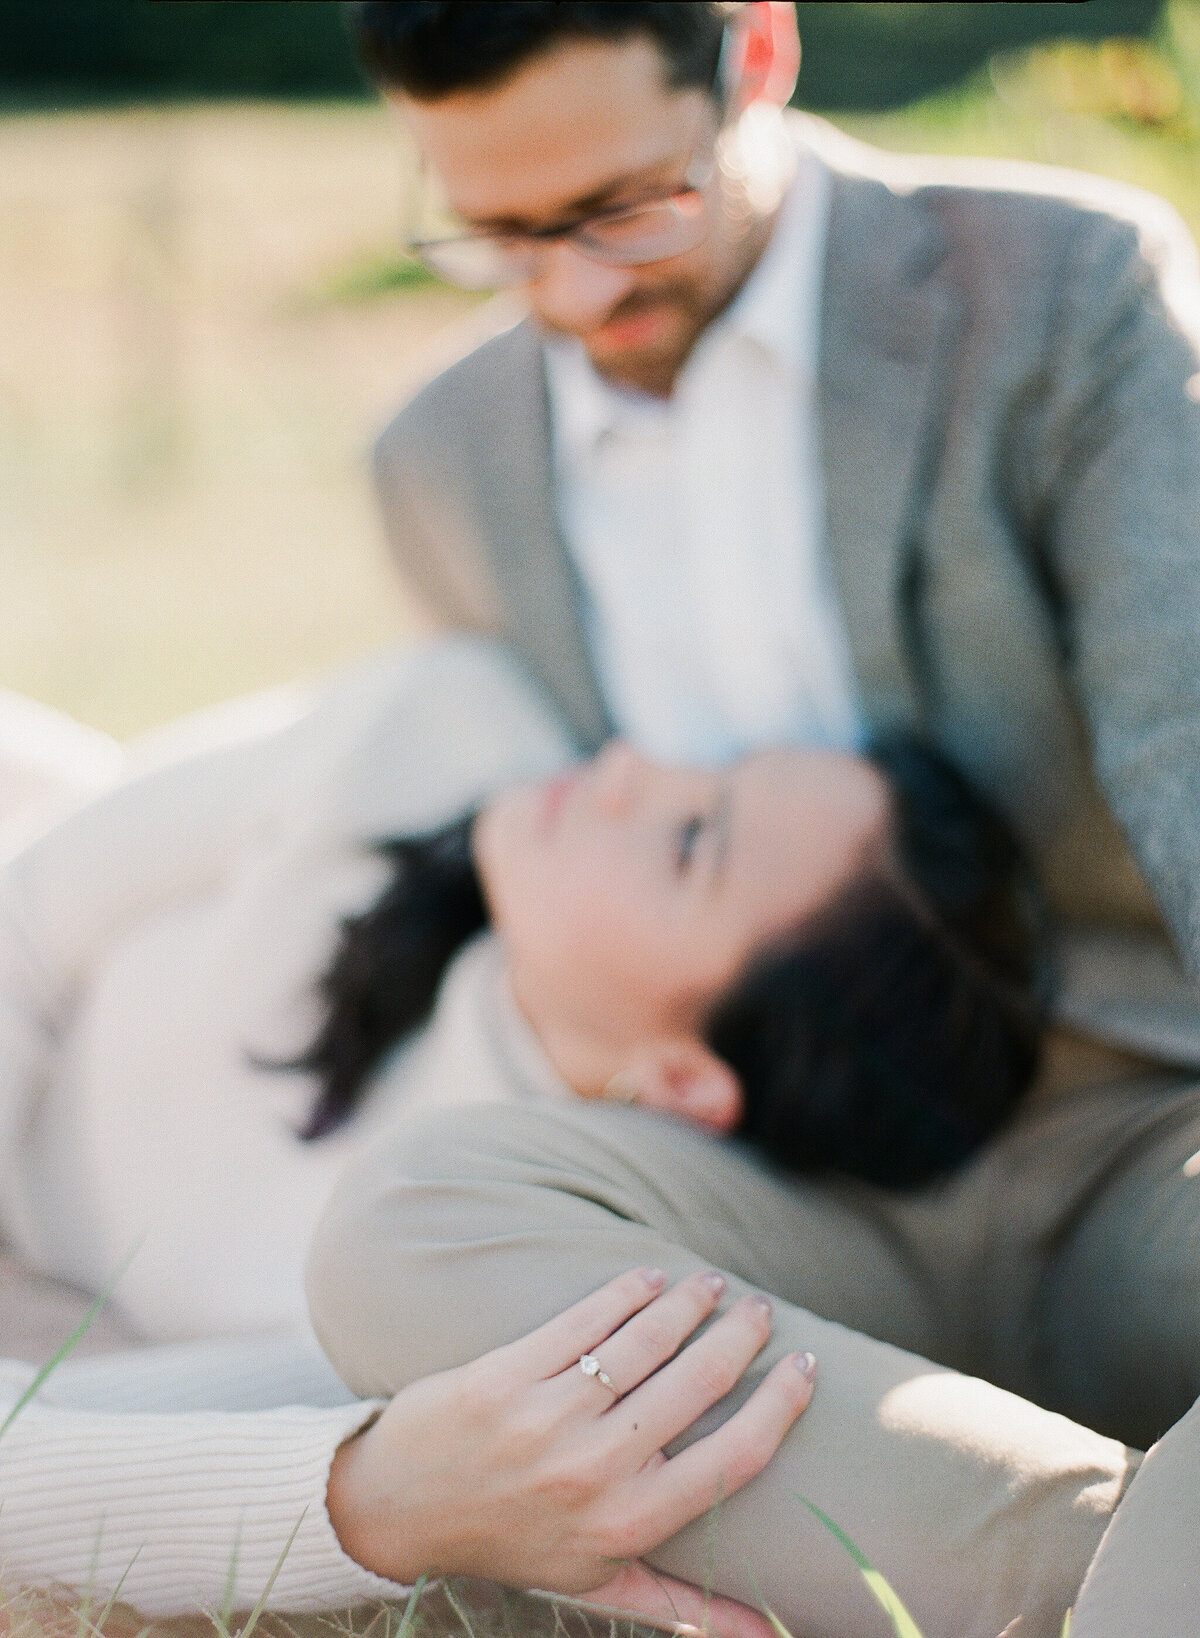 French Vineyard Engagement Photography at The Meadows in Raleigh, NC 19